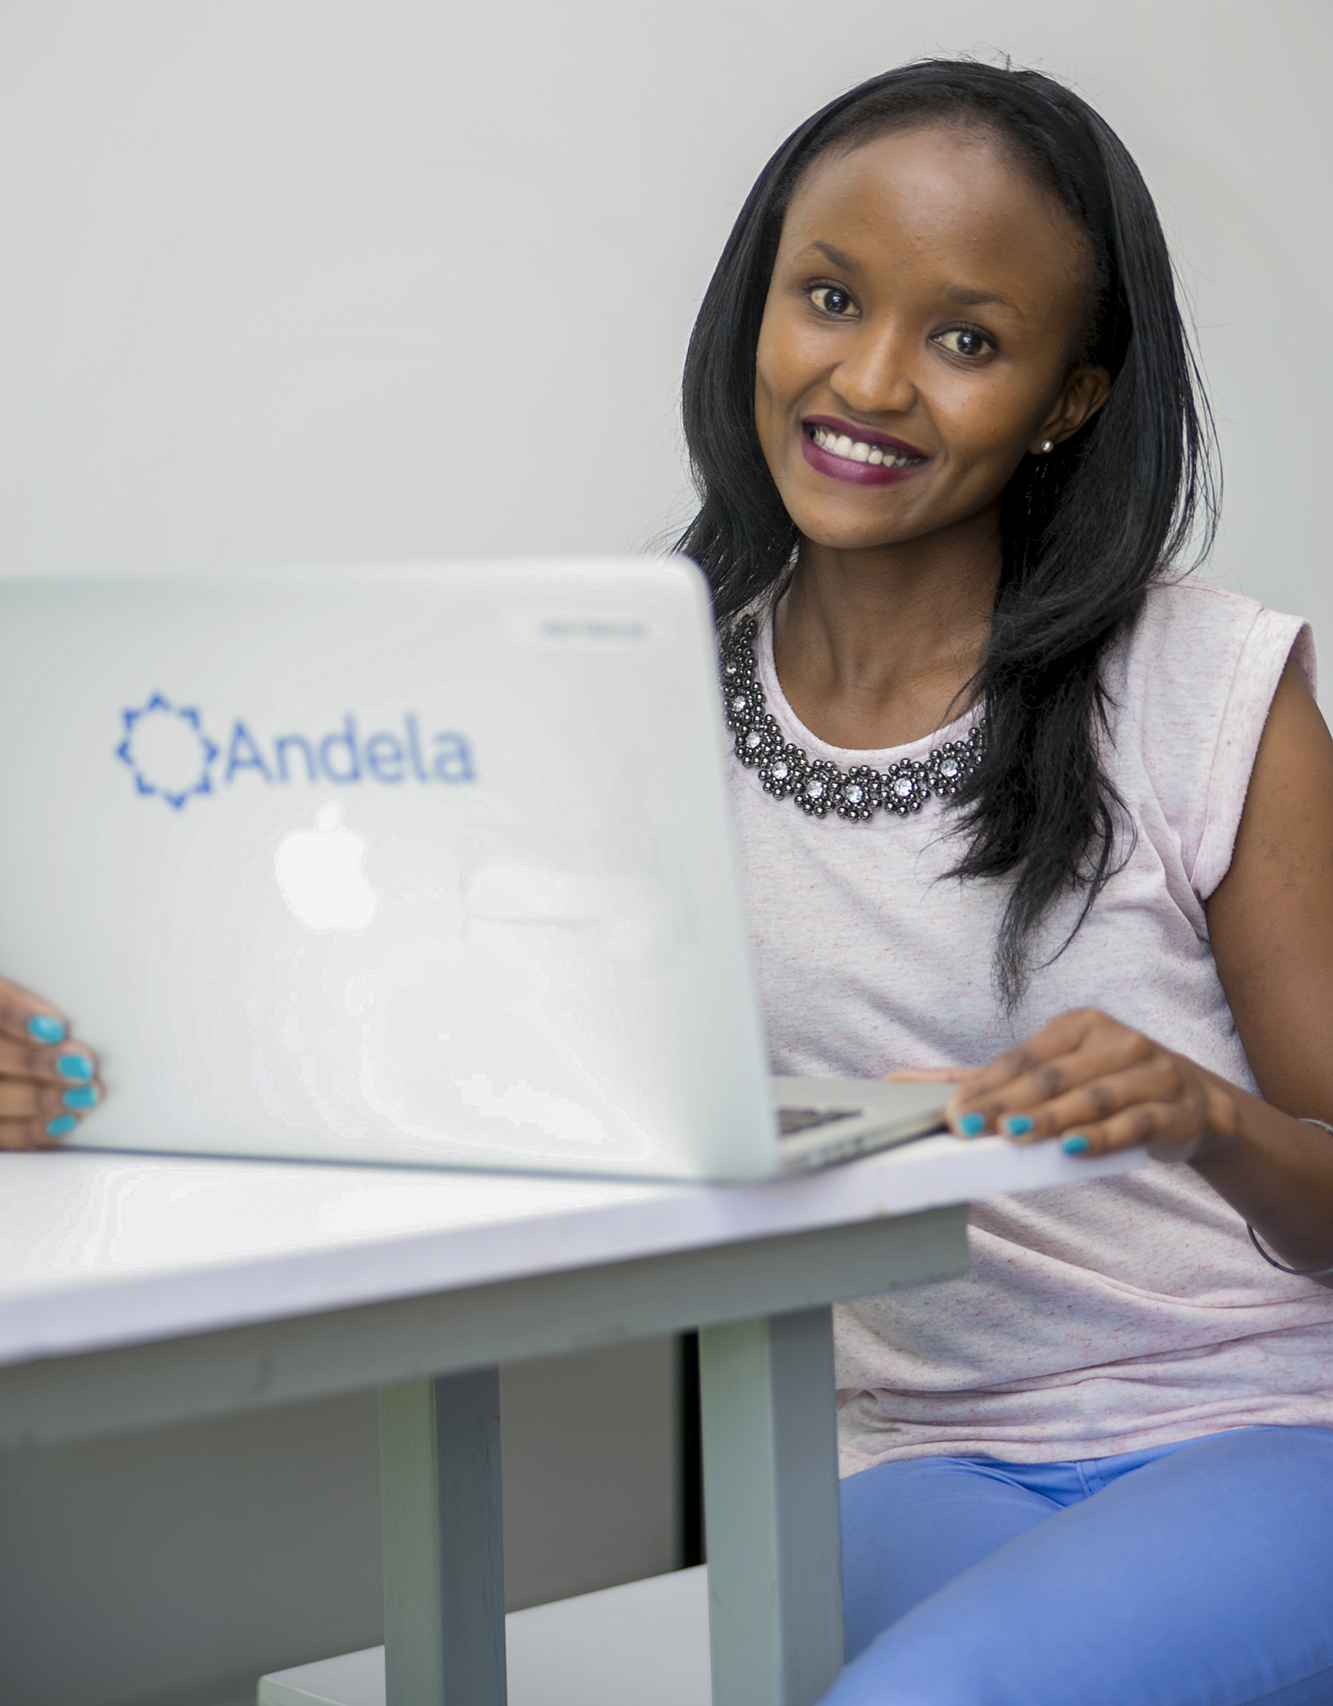 Andela Kenya's next fellowship intake will be all female